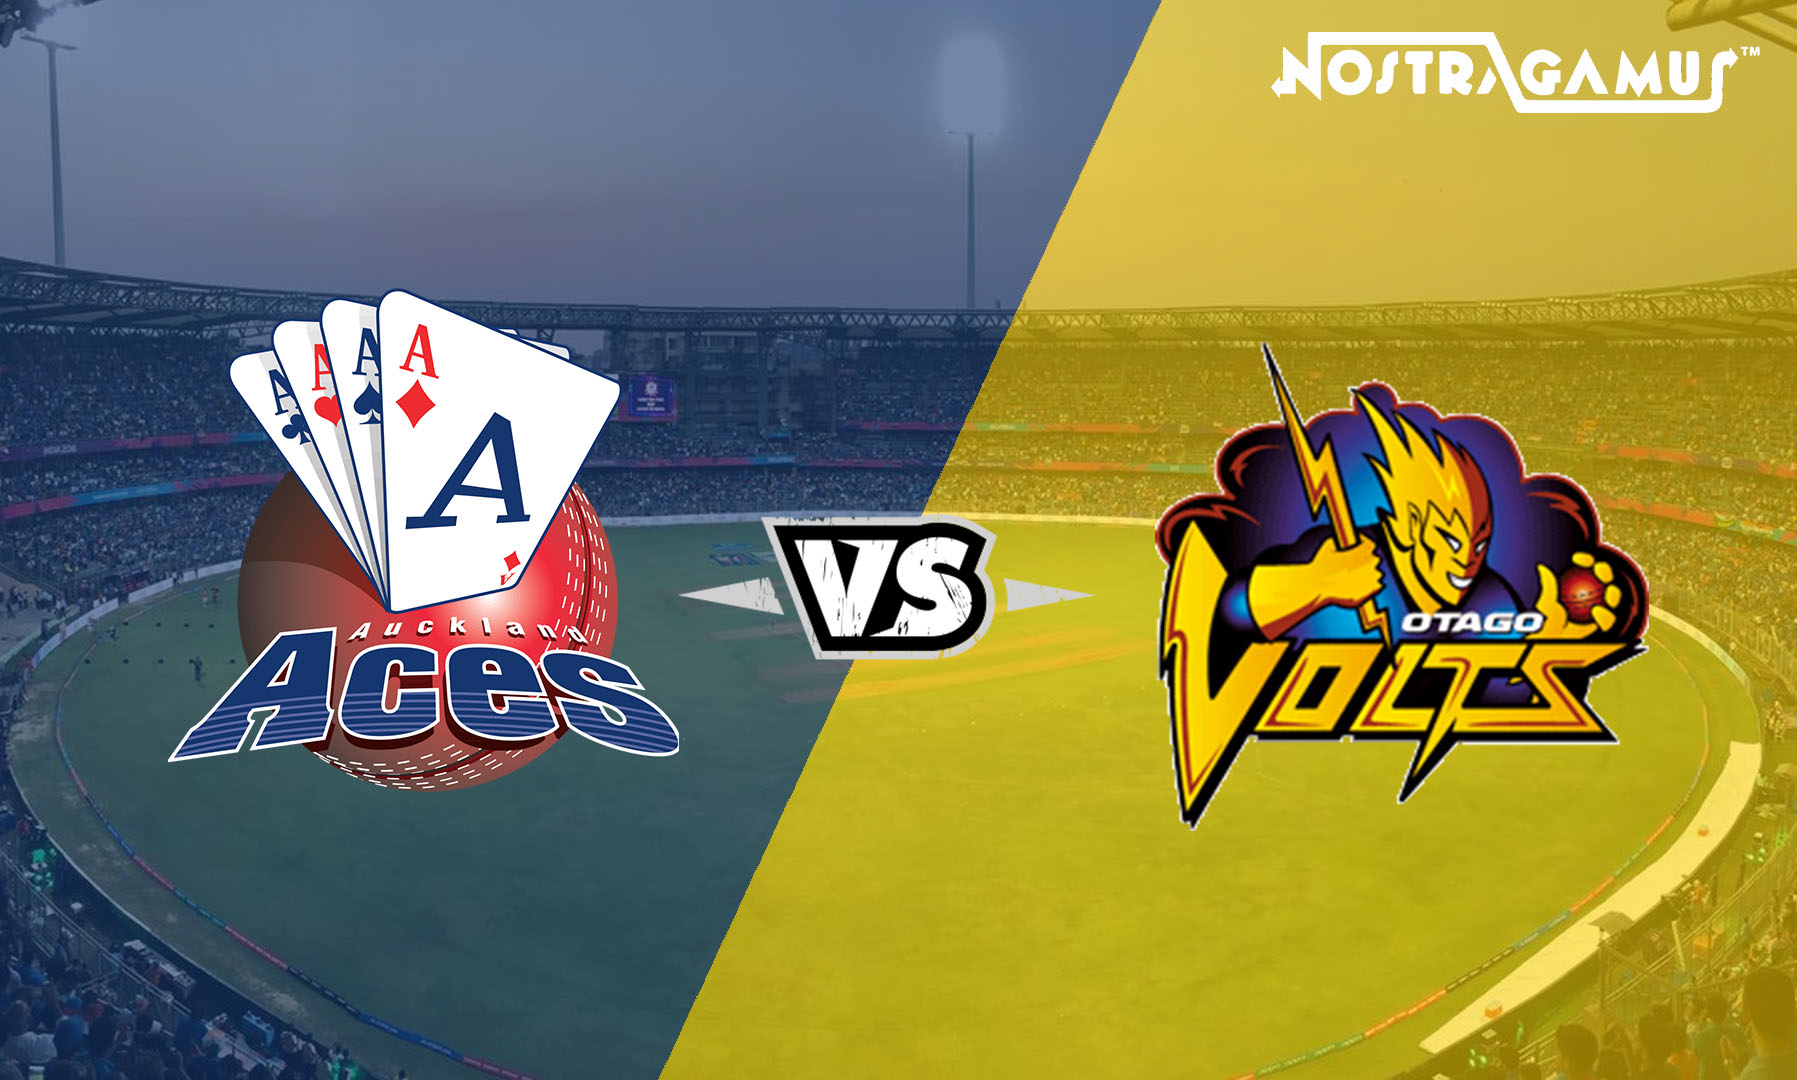 Super-smash-2019-20-Auckland-Aces-vs-Otago-Volts